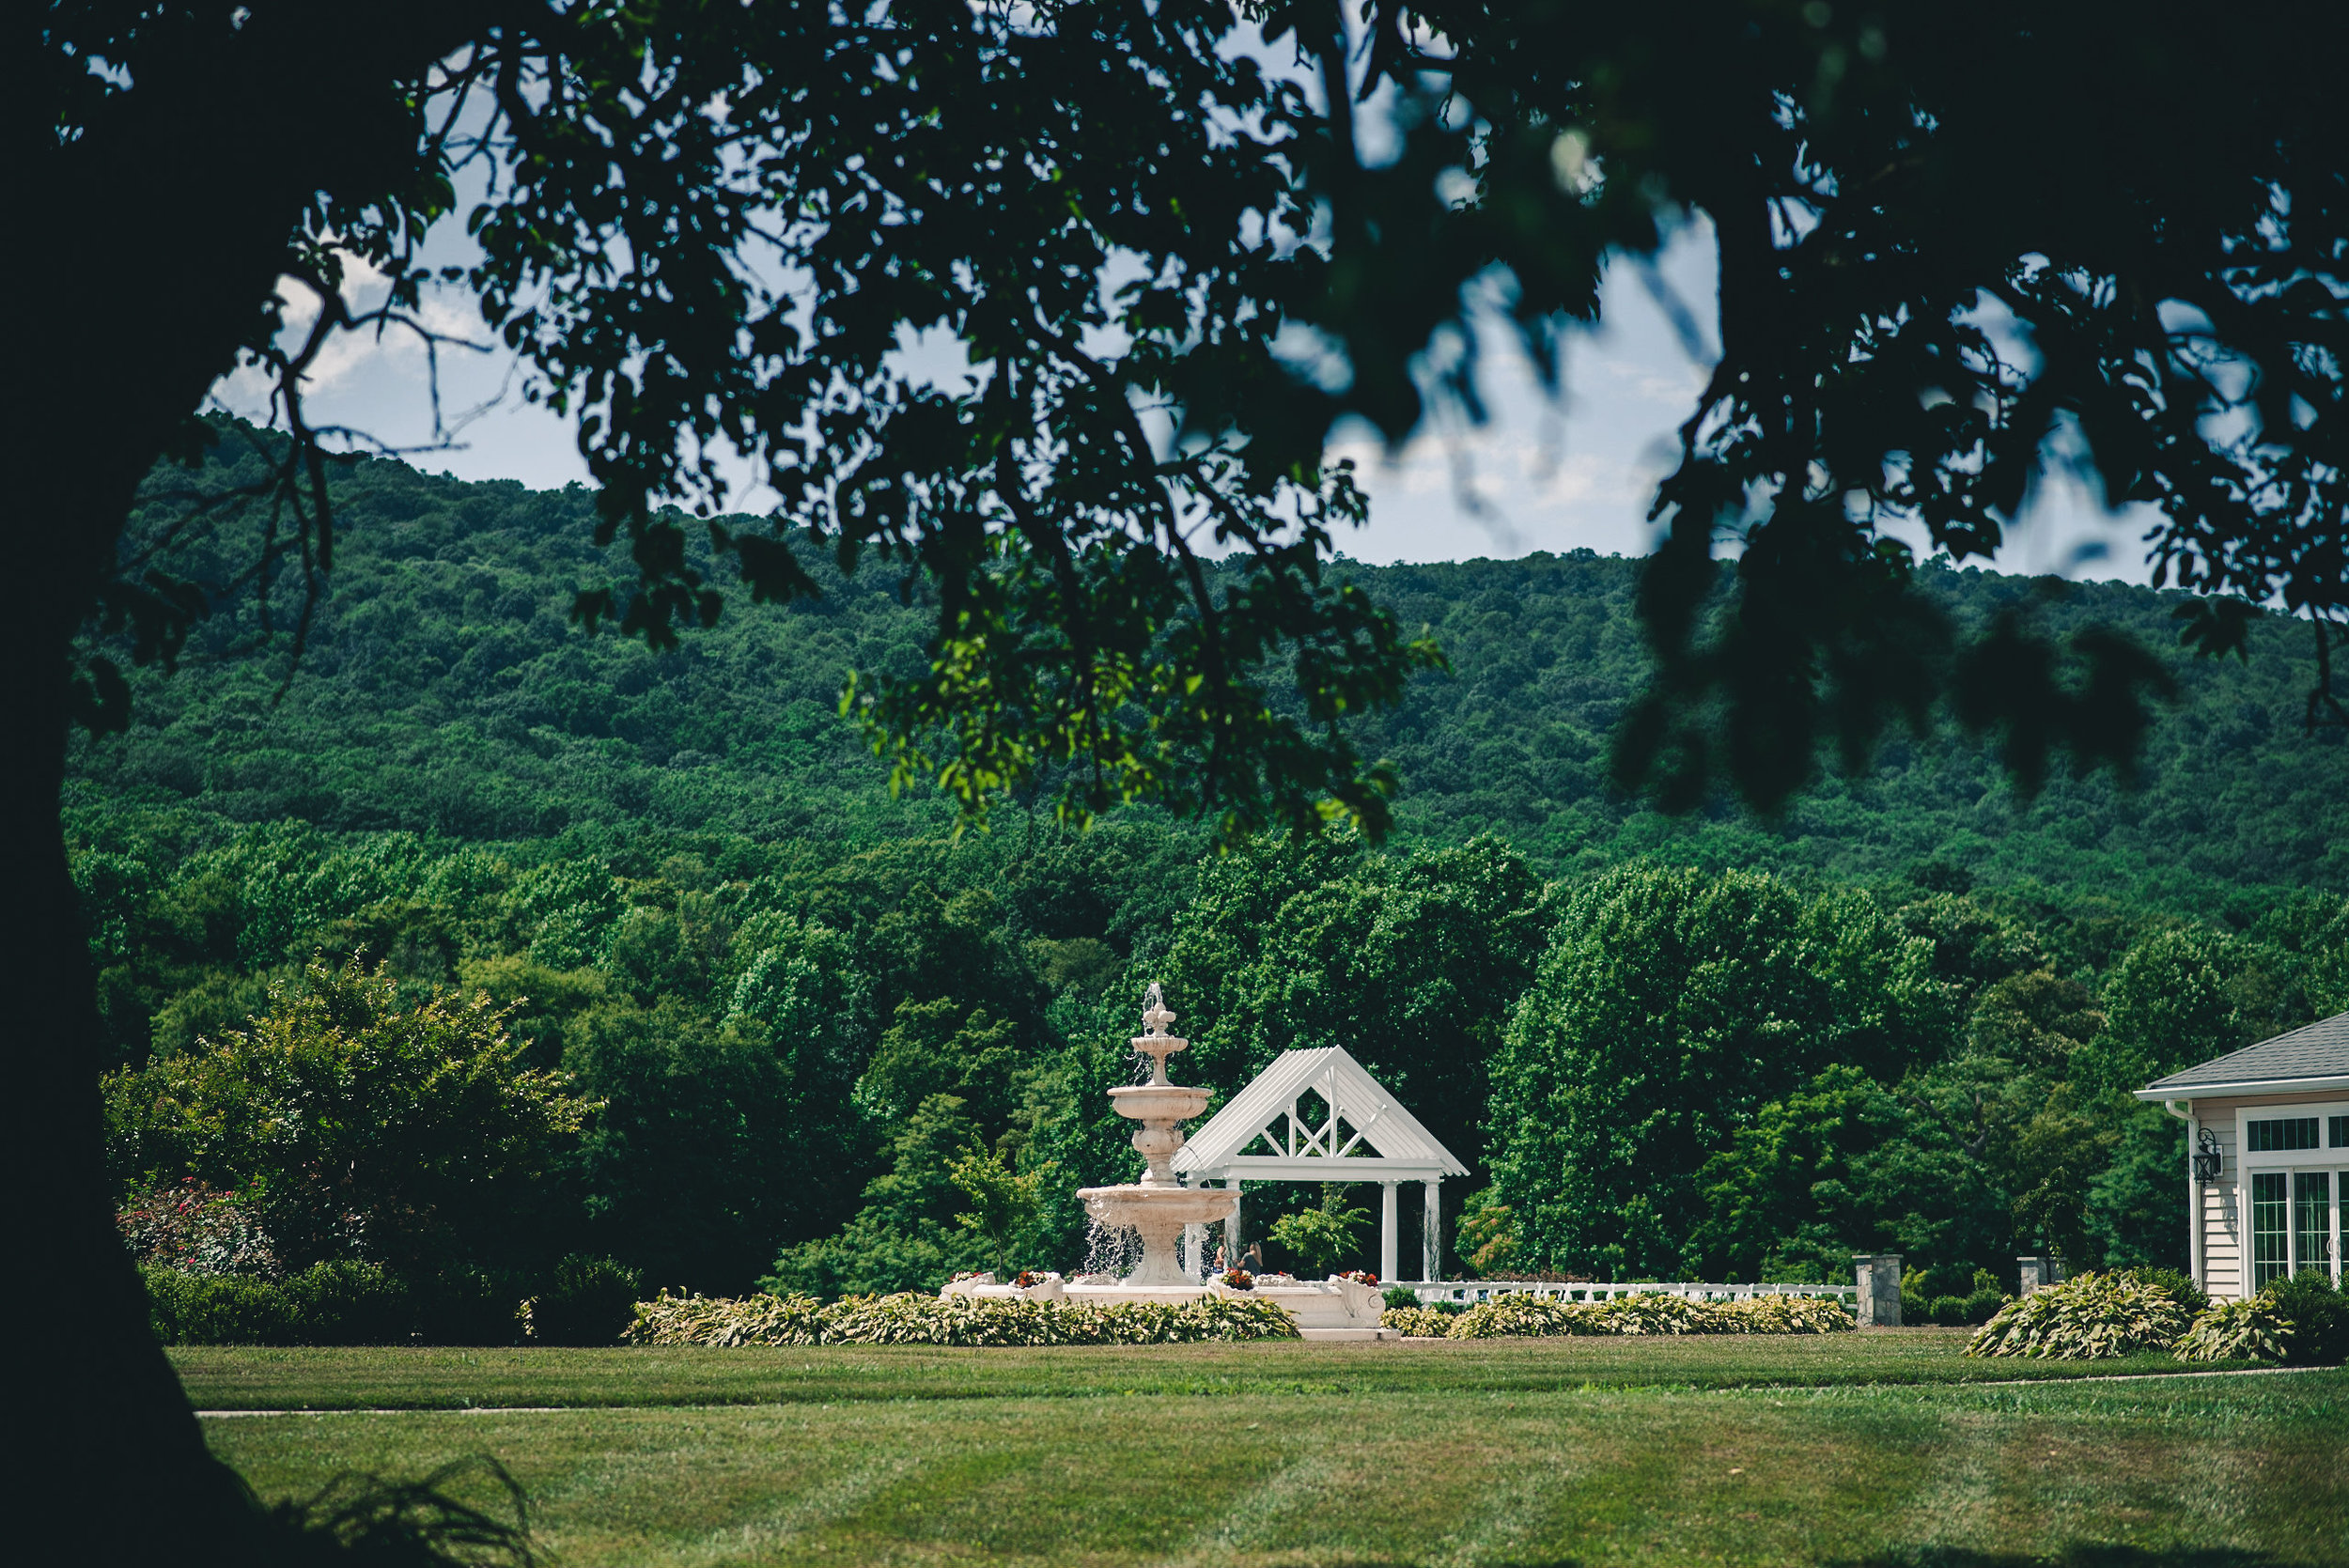 Wedding venue in the mountains